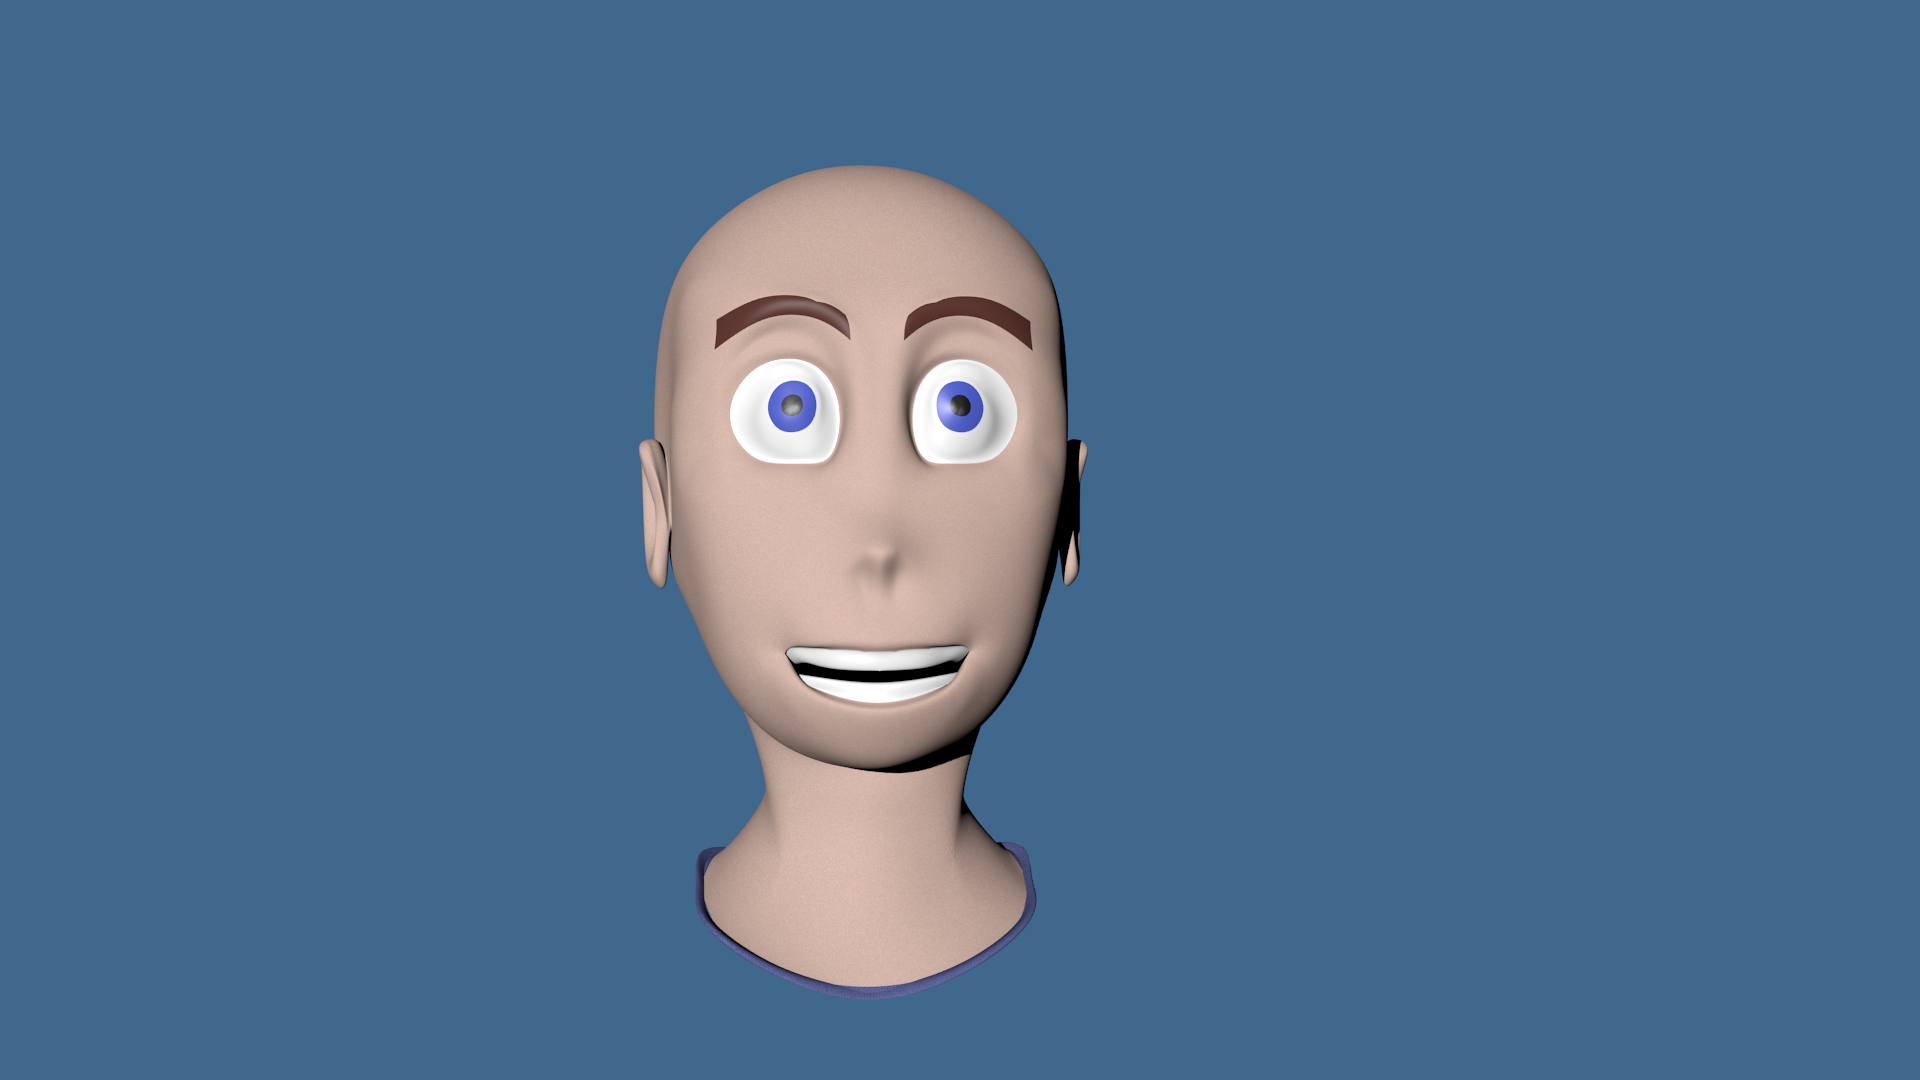 3D cartoon head